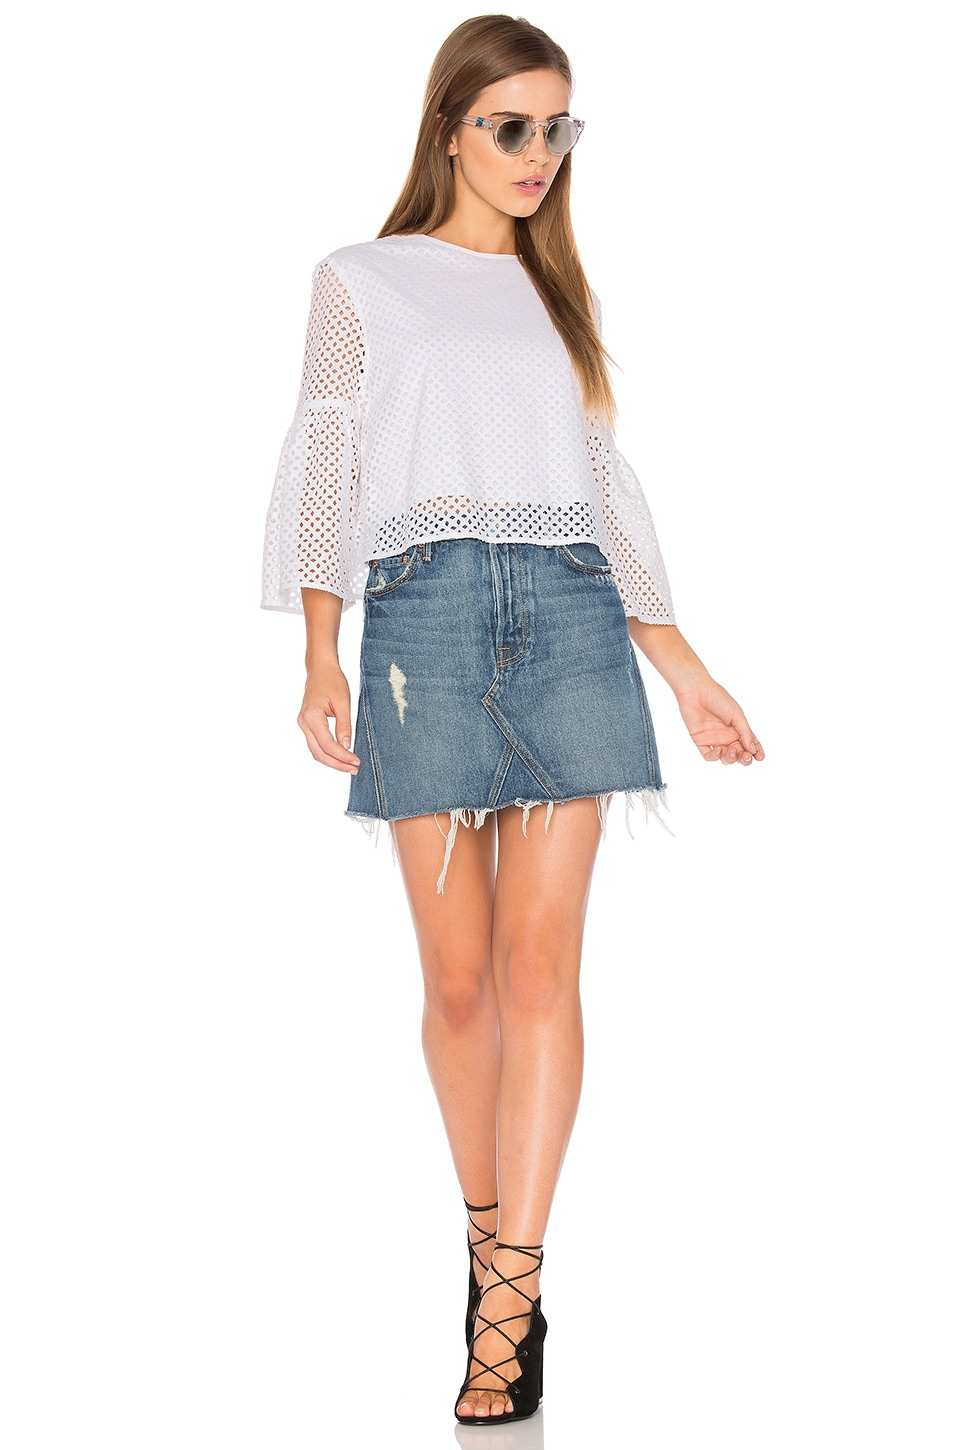 Bell Sleeved Crop Top by Tibi